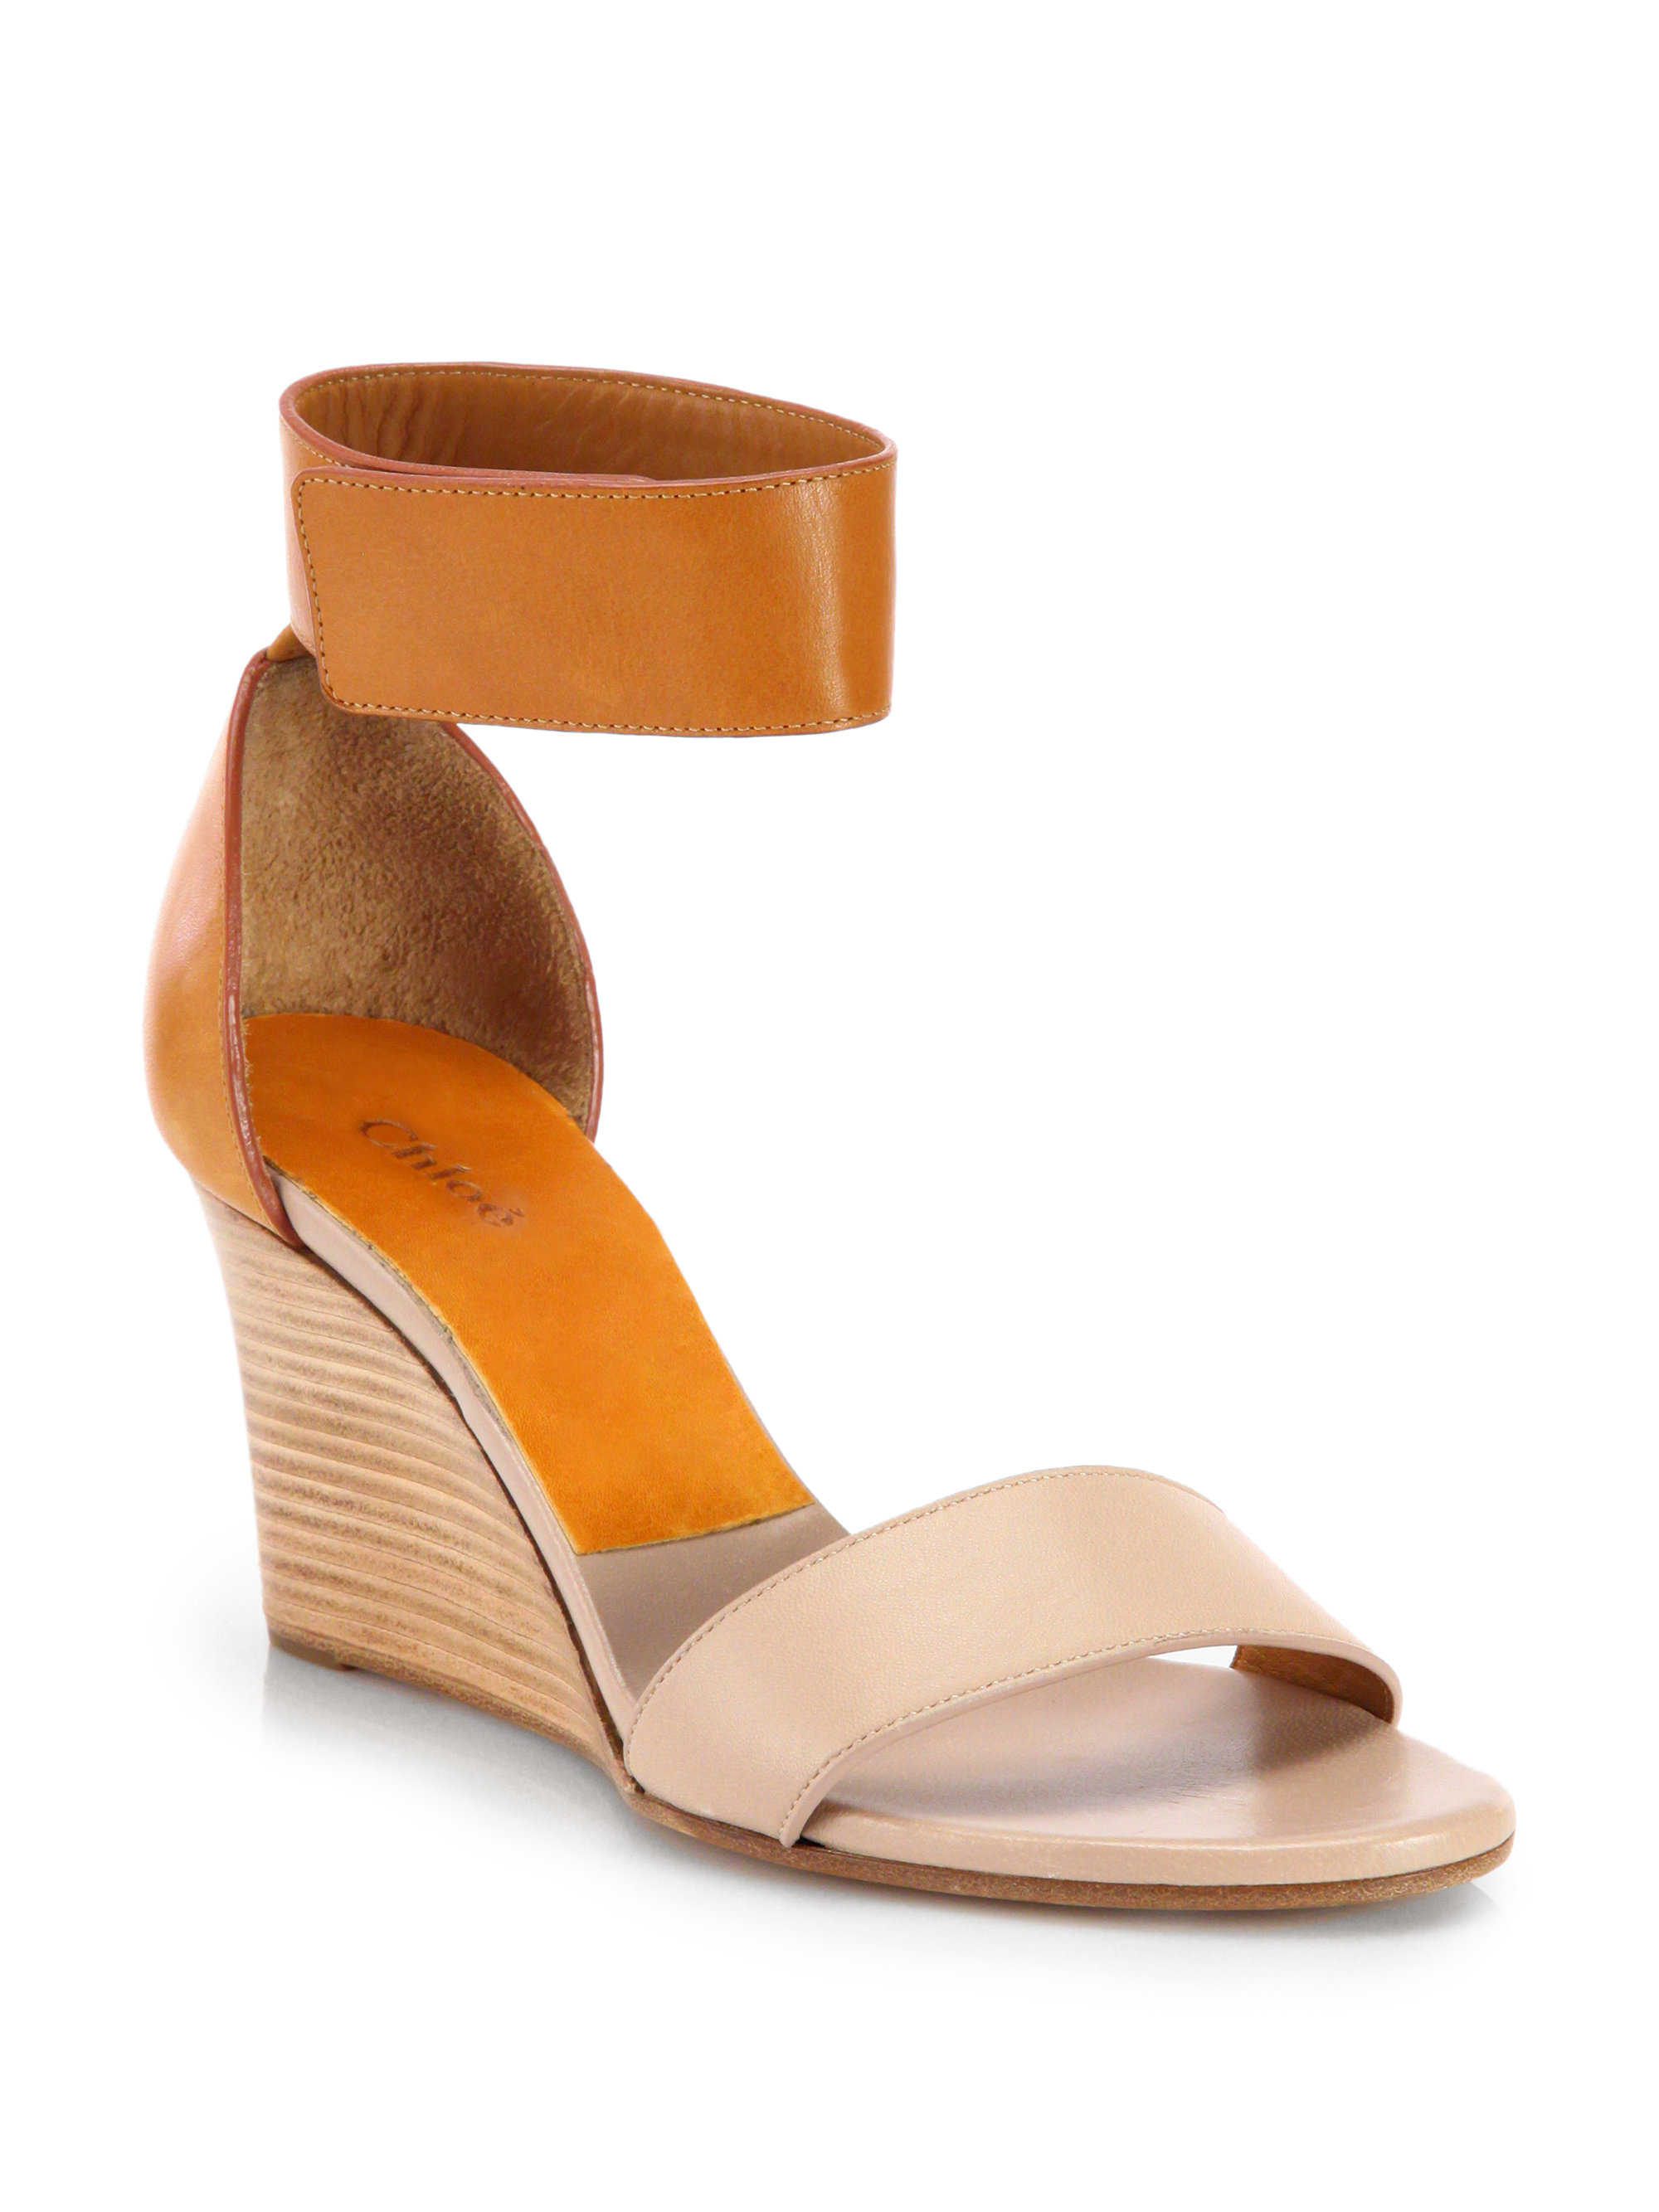 Lyst - Chloé Gala Leather Ankle Strap Wedge Sandals in Orange